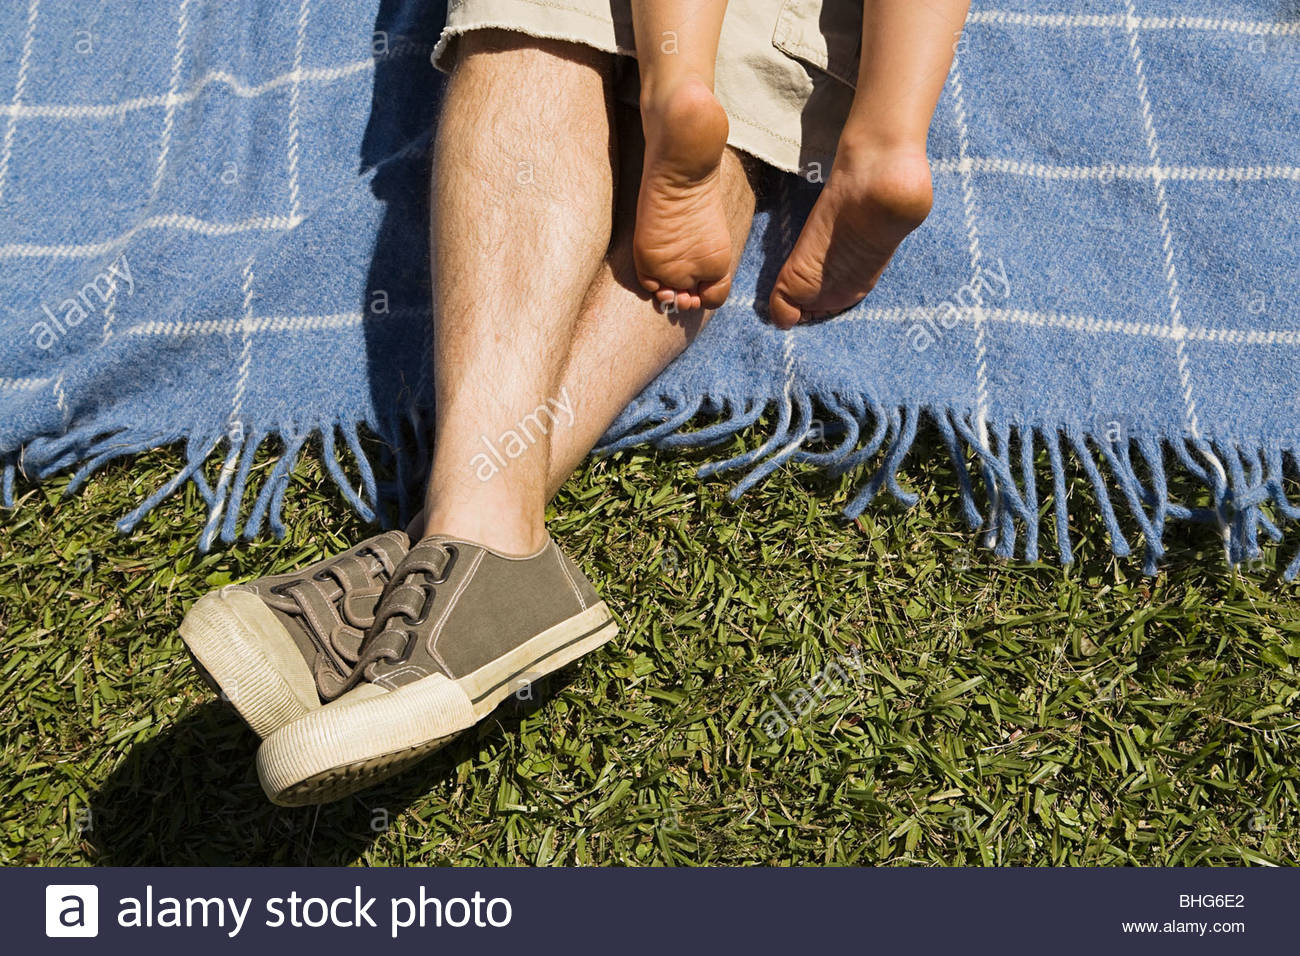 Up of man and boy relaxing on picnic blanket Photo Stock